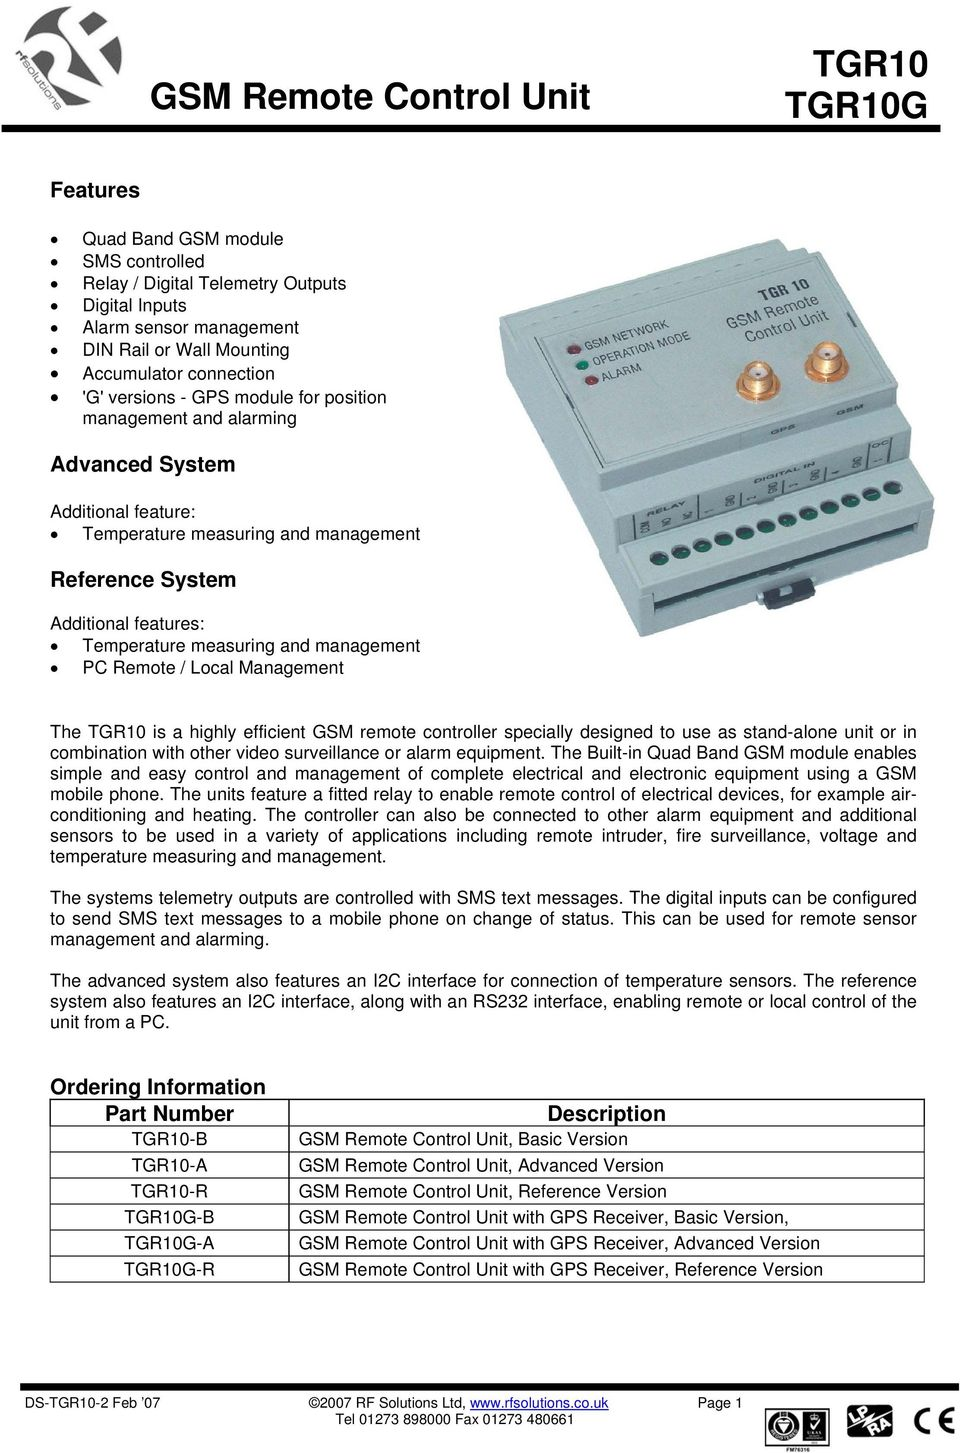 measuring and management PC Remote / Local Management The TGR10 is a highly efficient GSM remote controller specially designed to use as stand-alone unit or in combination with other video